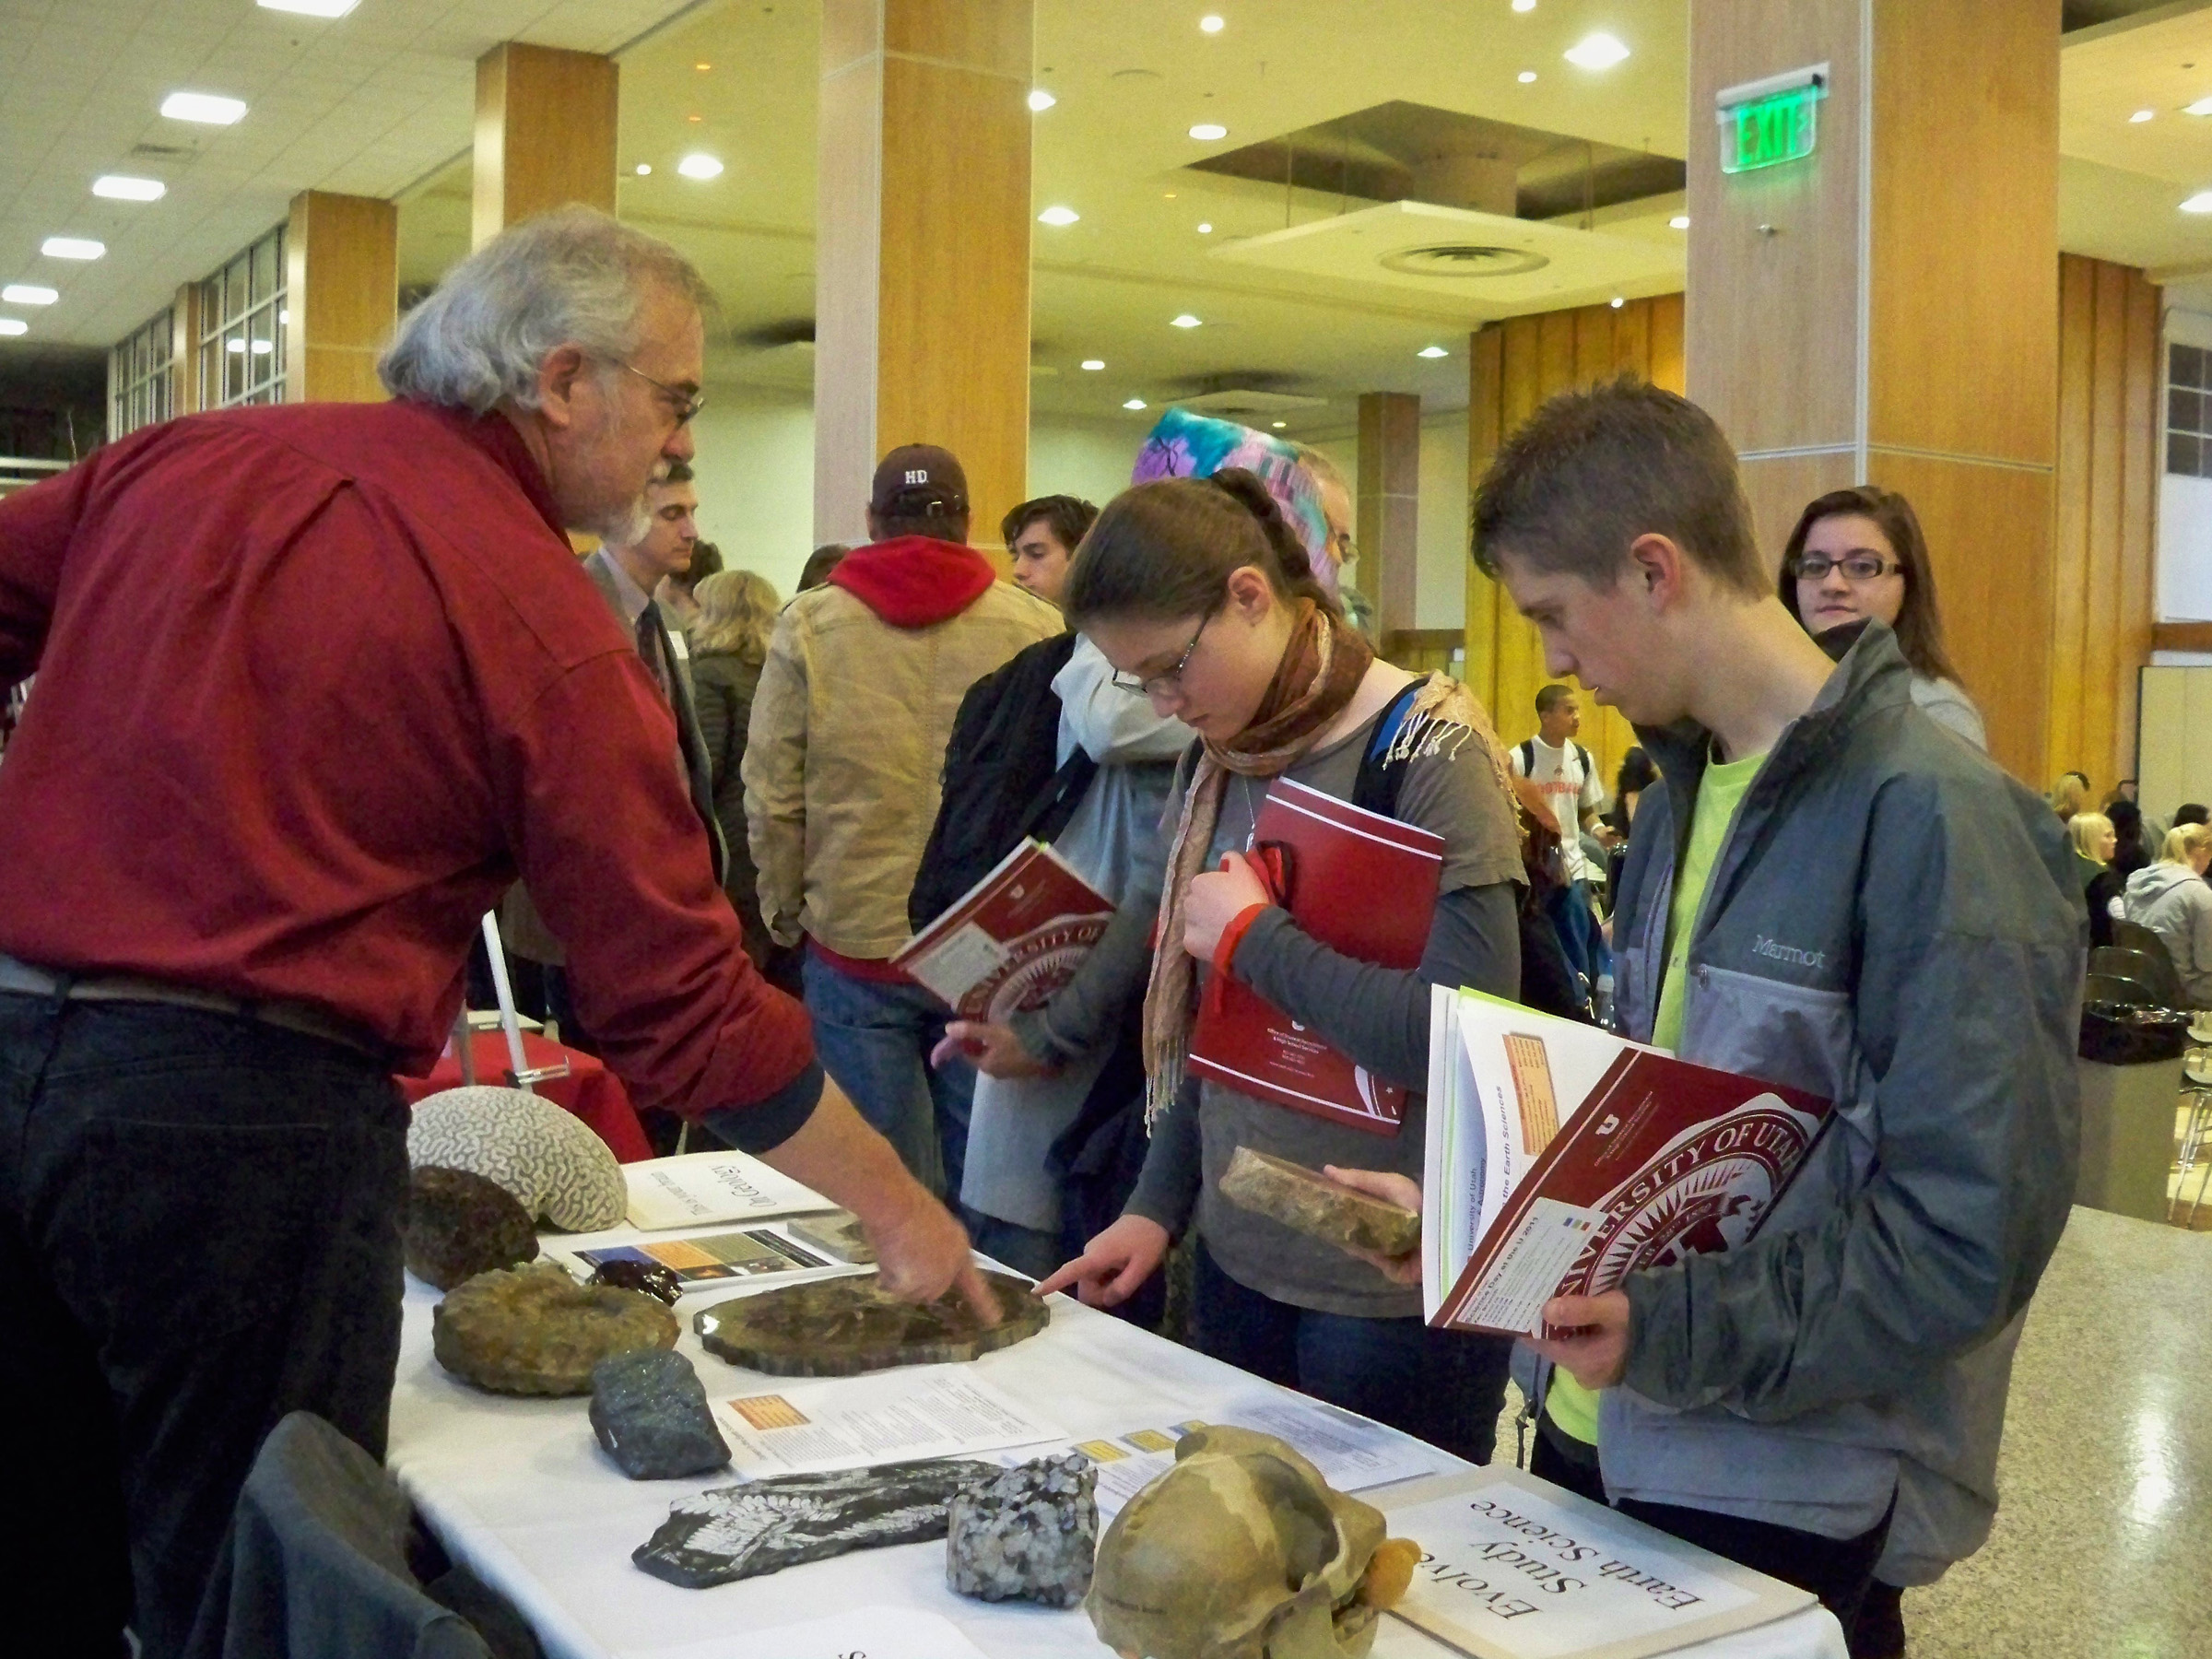 High school students examine an Earth science exhibit during the University of Utah's 2001 Science Day at the U. This year's Science Day at the U is set for Saturday, Nov. 10. It is the university's largest recruitment event, attracting some 800 high school students. To attend, students must register online by noon Nov. 6 at www.science.utah.edu.